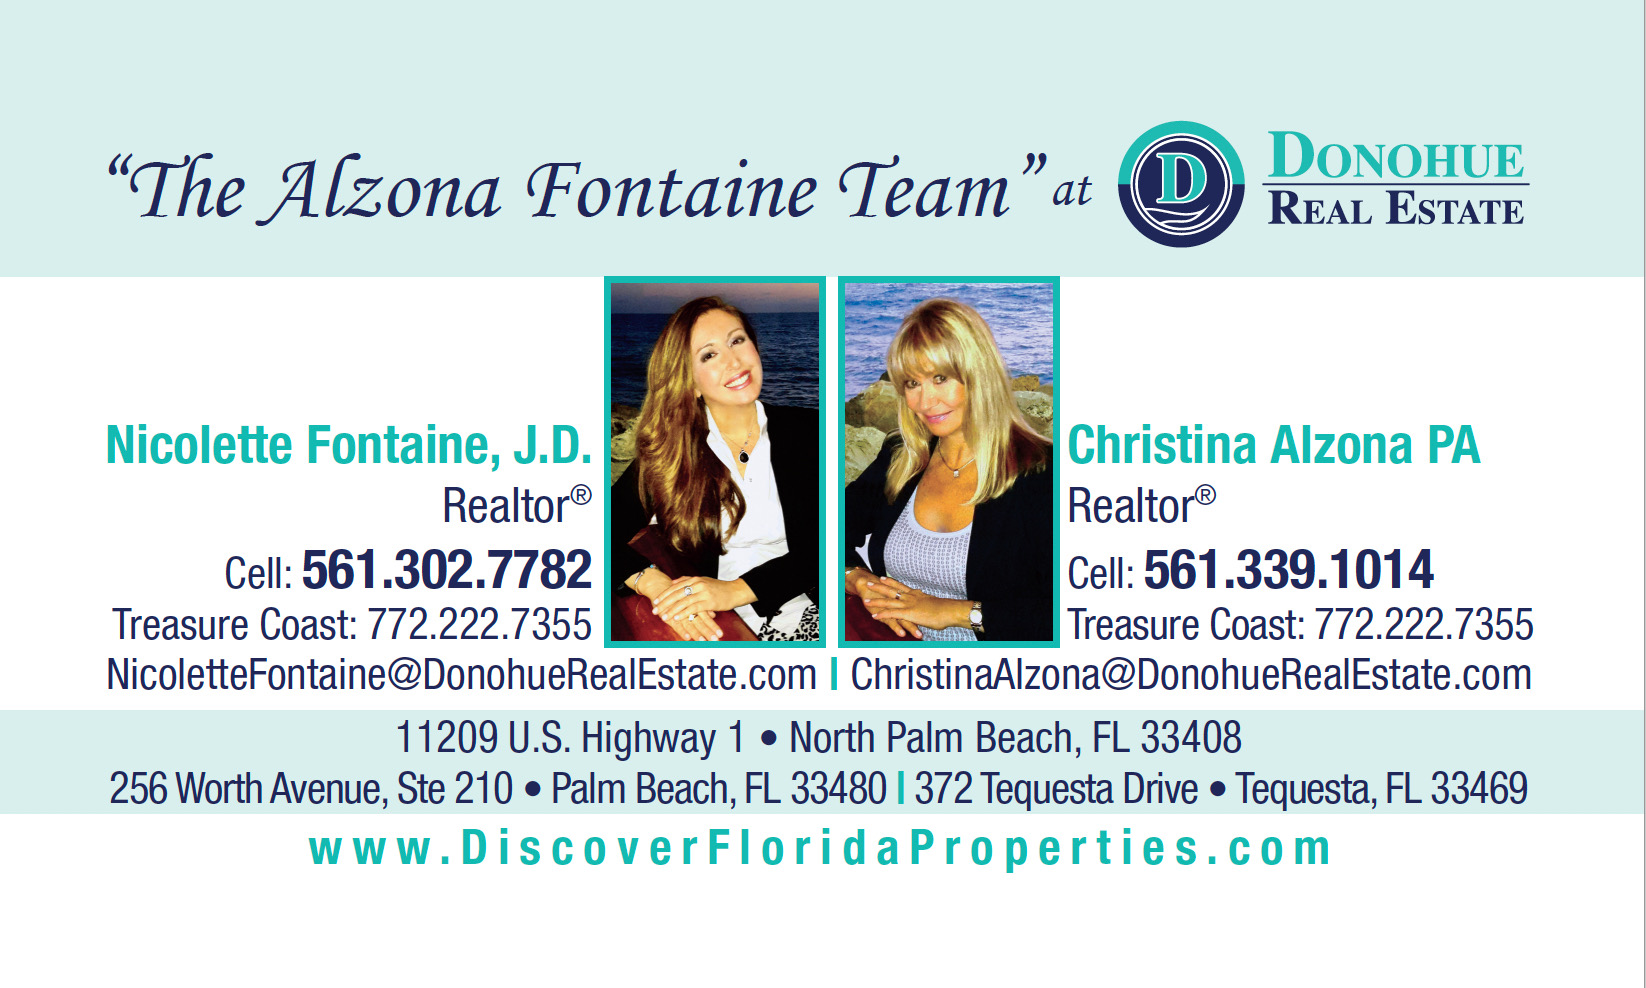 """Nicolette Fontaine & Christina Alzona – Realtors at Donohue Real Estate – Realtor at Future Home Realty 11209 U.S. Highway 1, North Palm Beach, FL 33408 256 Worth Avenue, Ste. 210, Palm Beach, FL 33480 372 Tequesta Dr., Tequesta, FL 33469 Now may be the best time to make your Next Move! Get two positive, helpful real estate professionals, Christina Alzona PA with 20 years experience and Nicolette Fontaine J.D. with 12 years experience, that will guide your every step in Buying or Selling a Home: Trusted resource for answers about the process Innovative marketing strategies Expertise about neighborhood features Ability to target home searches Strong negotiation skills Support through the closing and beyond. """"The Alzona Fontaine Team"""" at Donohue Real Estate LLC are Polish and Italian speaking Licensed Florida Real Estate Agents, who sell properties throughout the Palm Beaches and The Treasure Coast, Florida. Christina is a native of Warsaw, Poland and has worked with Polish and European Real Estate Clients; Nicolette has worked with International Buyers and Investors. Specializing in Waterfront Real Estate, Luxury Homes, Oceanfront and Intracoastal Condos, Golfcourse Properties, Equestrian/Farm Properties, Residential Resale, New Home Construction & Commercial Real Estate throughout Palm Beach County, Martin County and St Lucie County, Southeast Florida. - """"The Alzona Fontaine Team"""" oferuje kompleksową obsługę klienta w obrocie nieruchomościami (kupno i sprzedaż) w Palm Beach County, Martin County and St Lucie County na południowo-wschodnim wybrzeżu Florydy. Oprócz angielskiego, Christina i Nicolette mówią biegle po polsku i włosku. Christina pochodzi z Warszawy i ma ponad 20-letnie doświadczenie w pośrednictwie obrotu nieruchomościami. Nicolette ma ponad 12-letnie doświadczenie na rynku nieruchomości. Christina i Nicolette specjalizują się między innymi w nieruchomościach luksusowych nad wodą, przy plaży i na polach golfowych. – Nicolette: (561) 302-7782 Christina: ("""